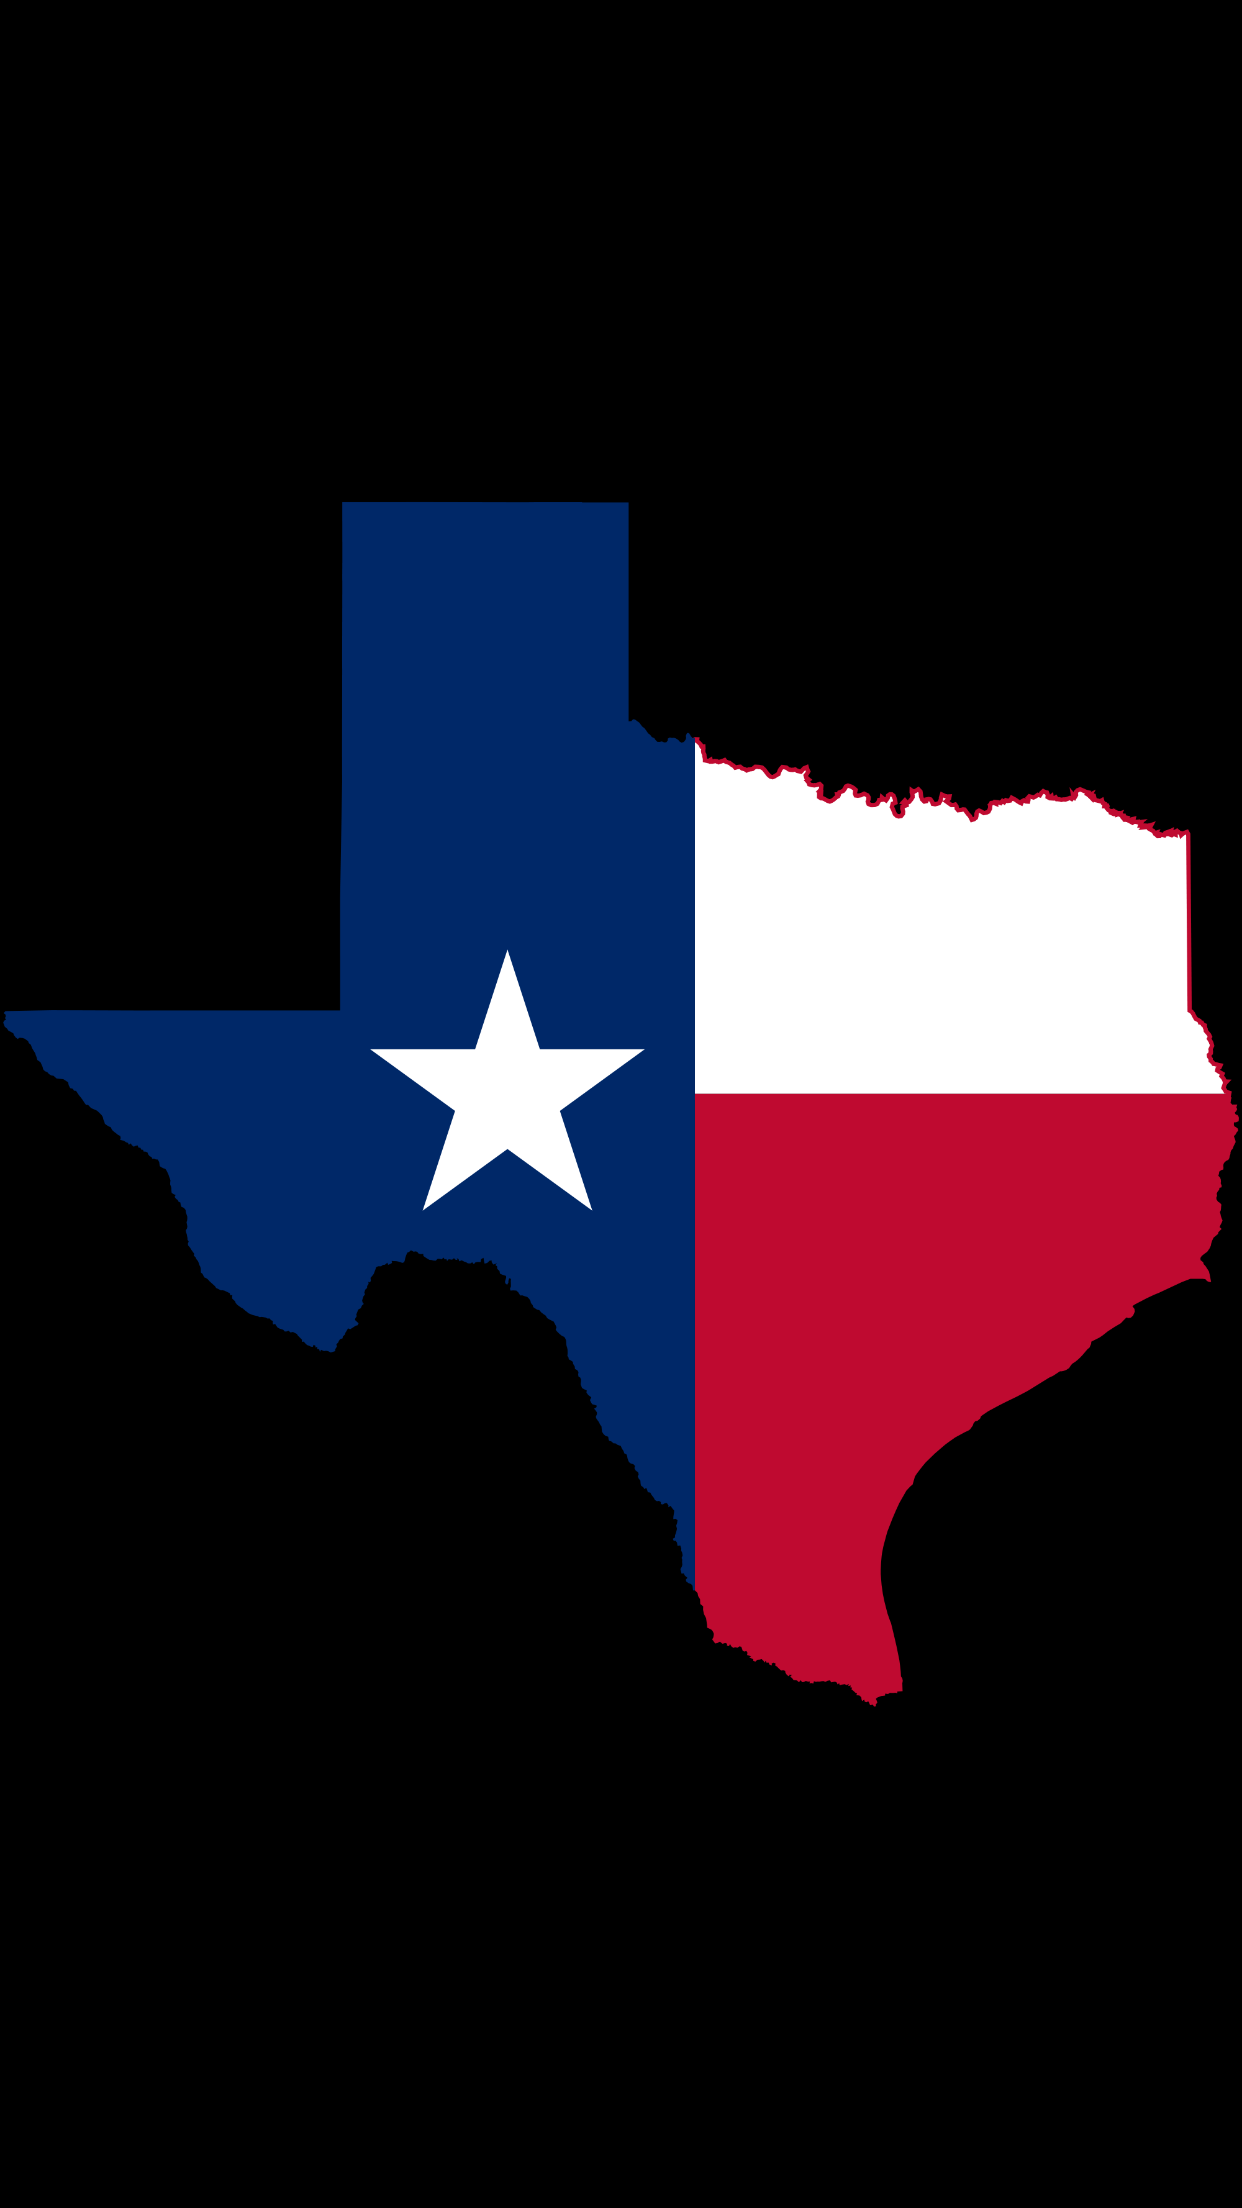 Apple iPhone 6/Plus Texas Wallpaper Spare tire covers